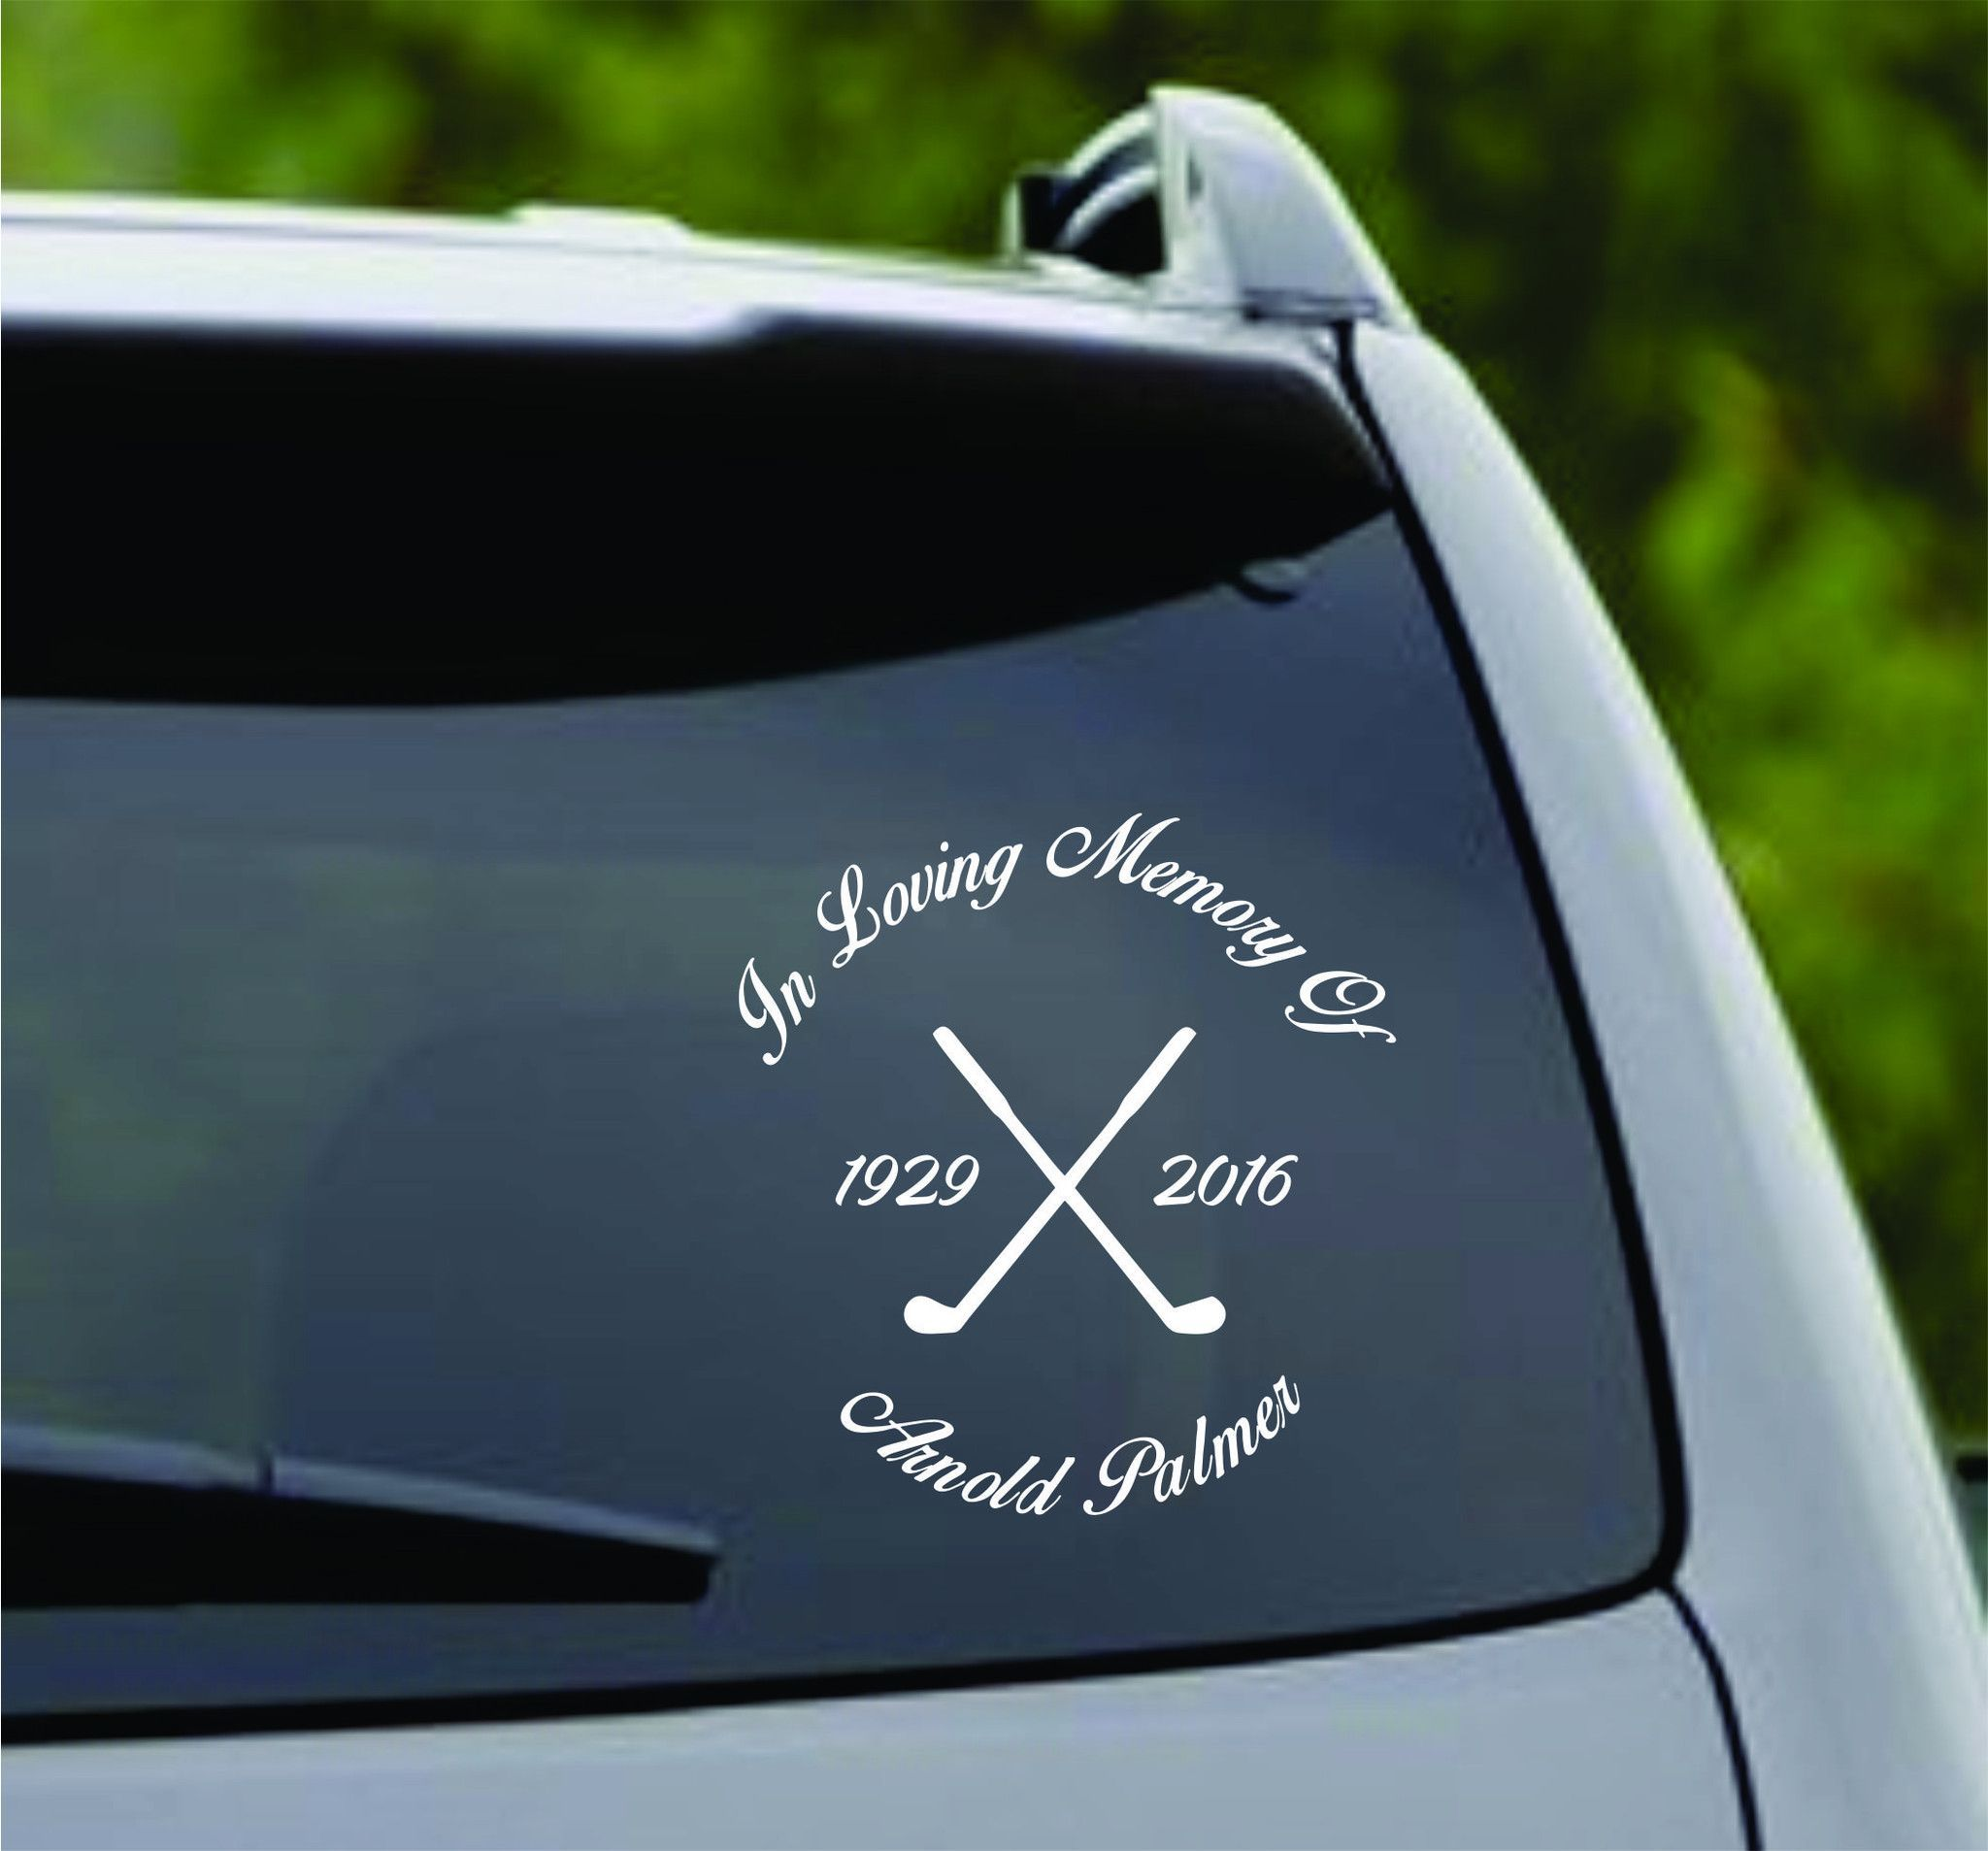 in loving memory arnold palmer version 1 car window windshield lettering decal sticker decals stickers